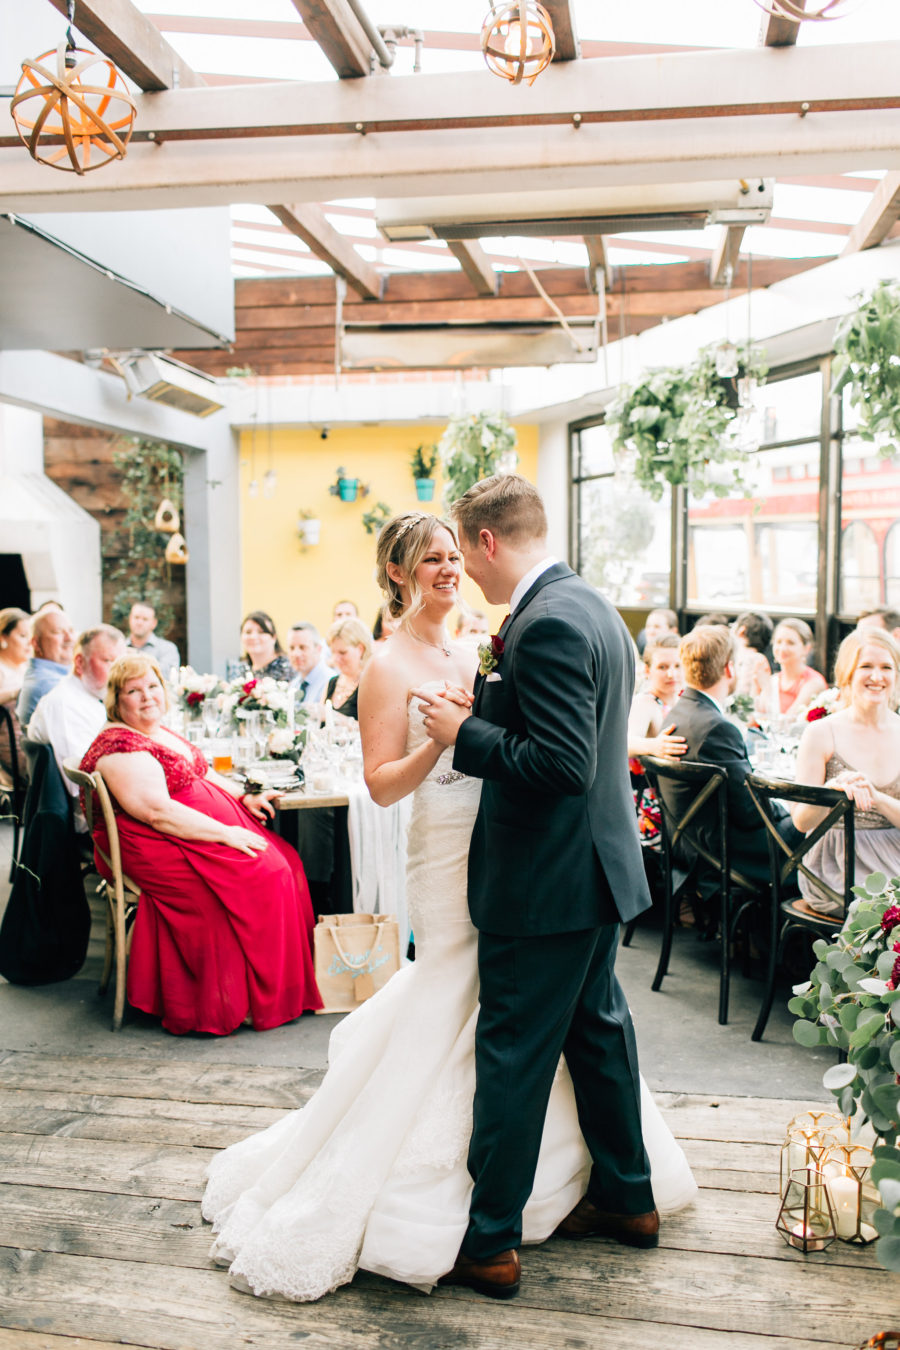 Mr. and Mrs. Grady - Jenna Bechtholt Photography - Wedding at Madera Kitchen --15